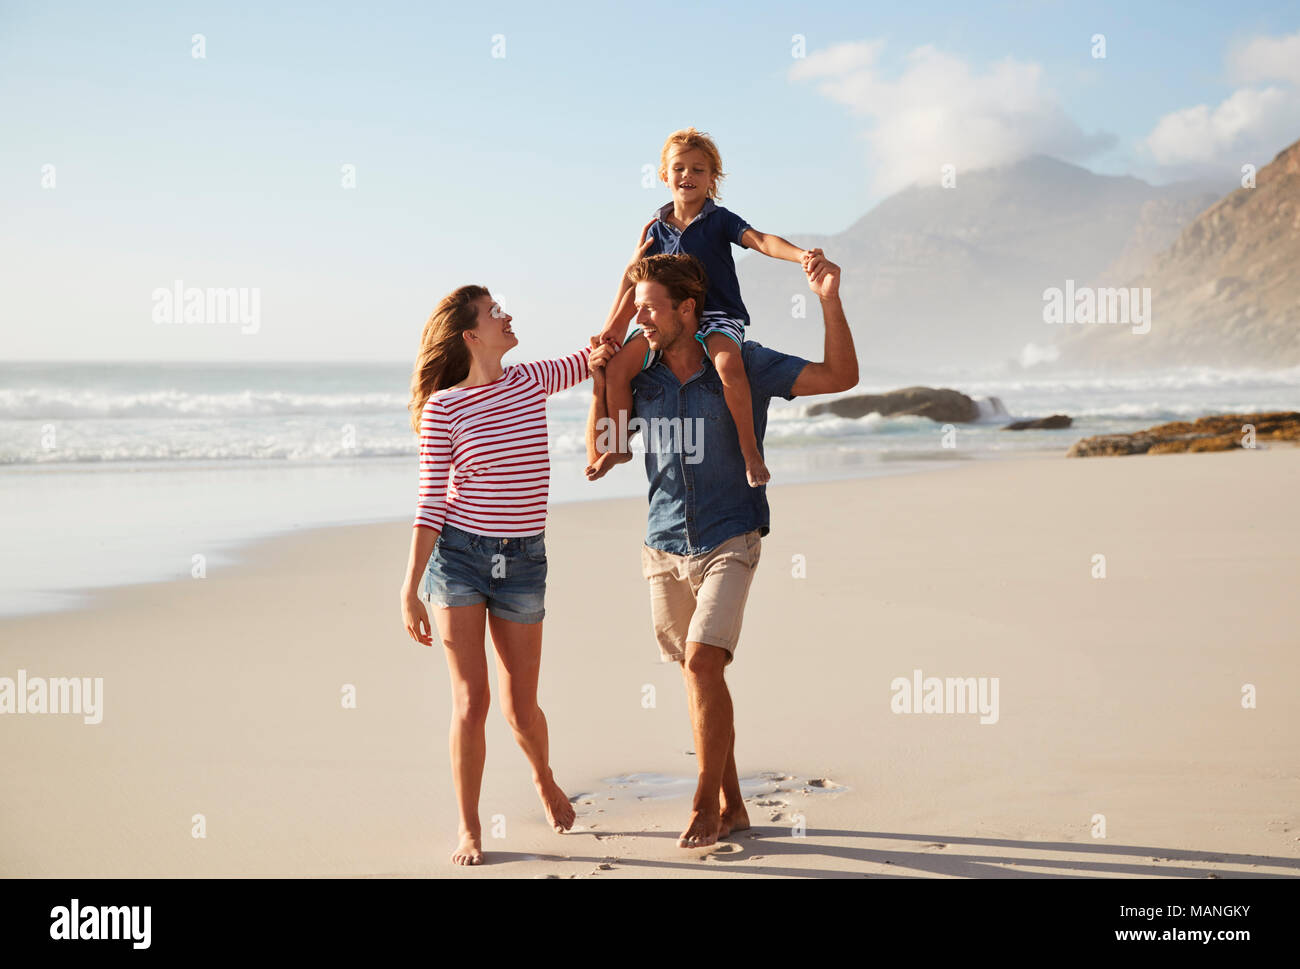 Parents Carrying Son On Shoulders On Beach Vacation - Stock Image